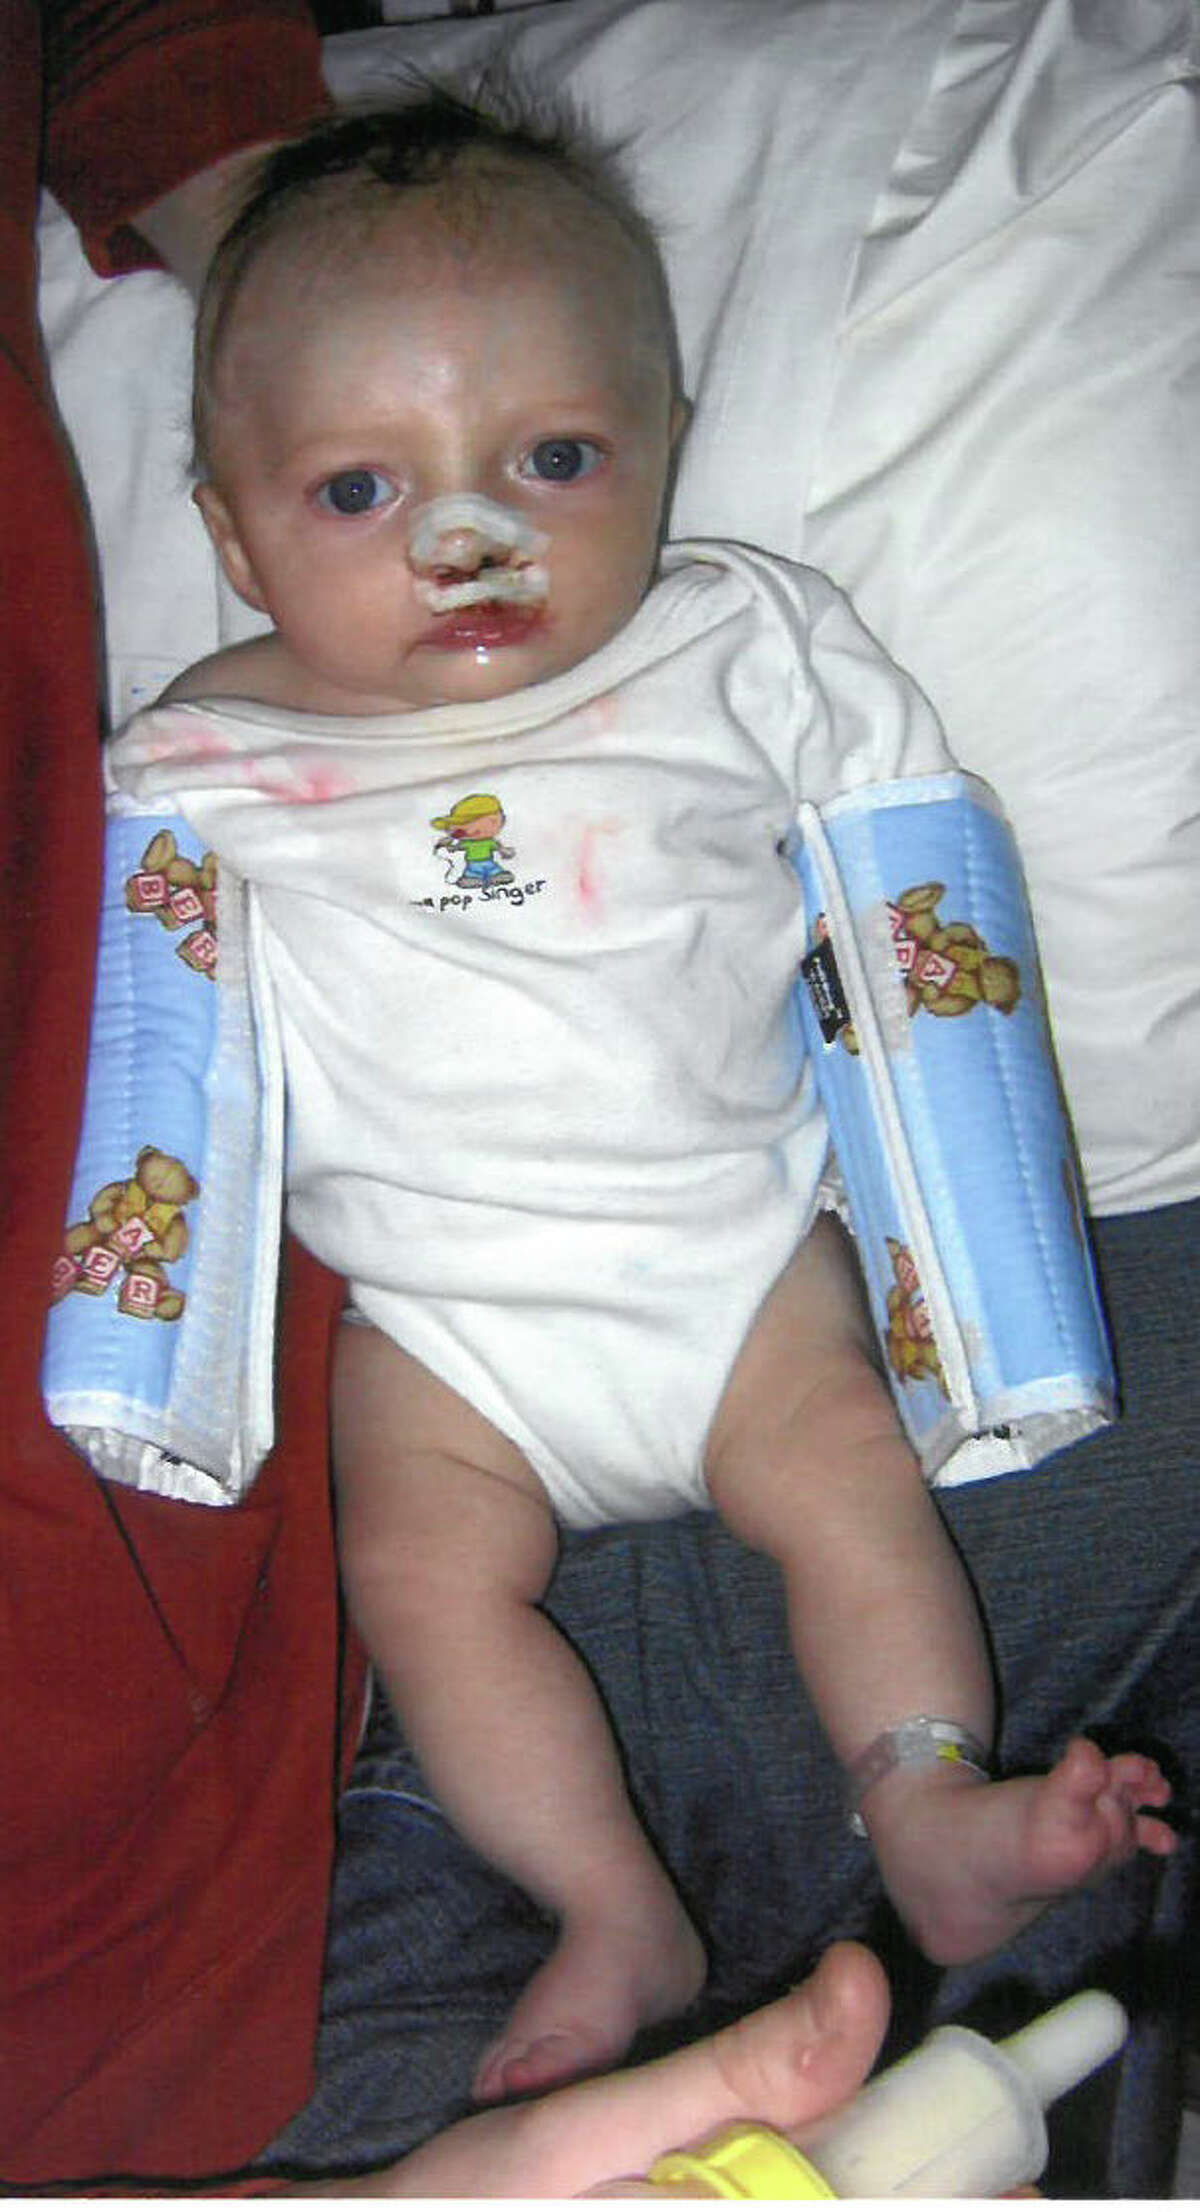 Carter Powell as an infant. (Submitted photo)